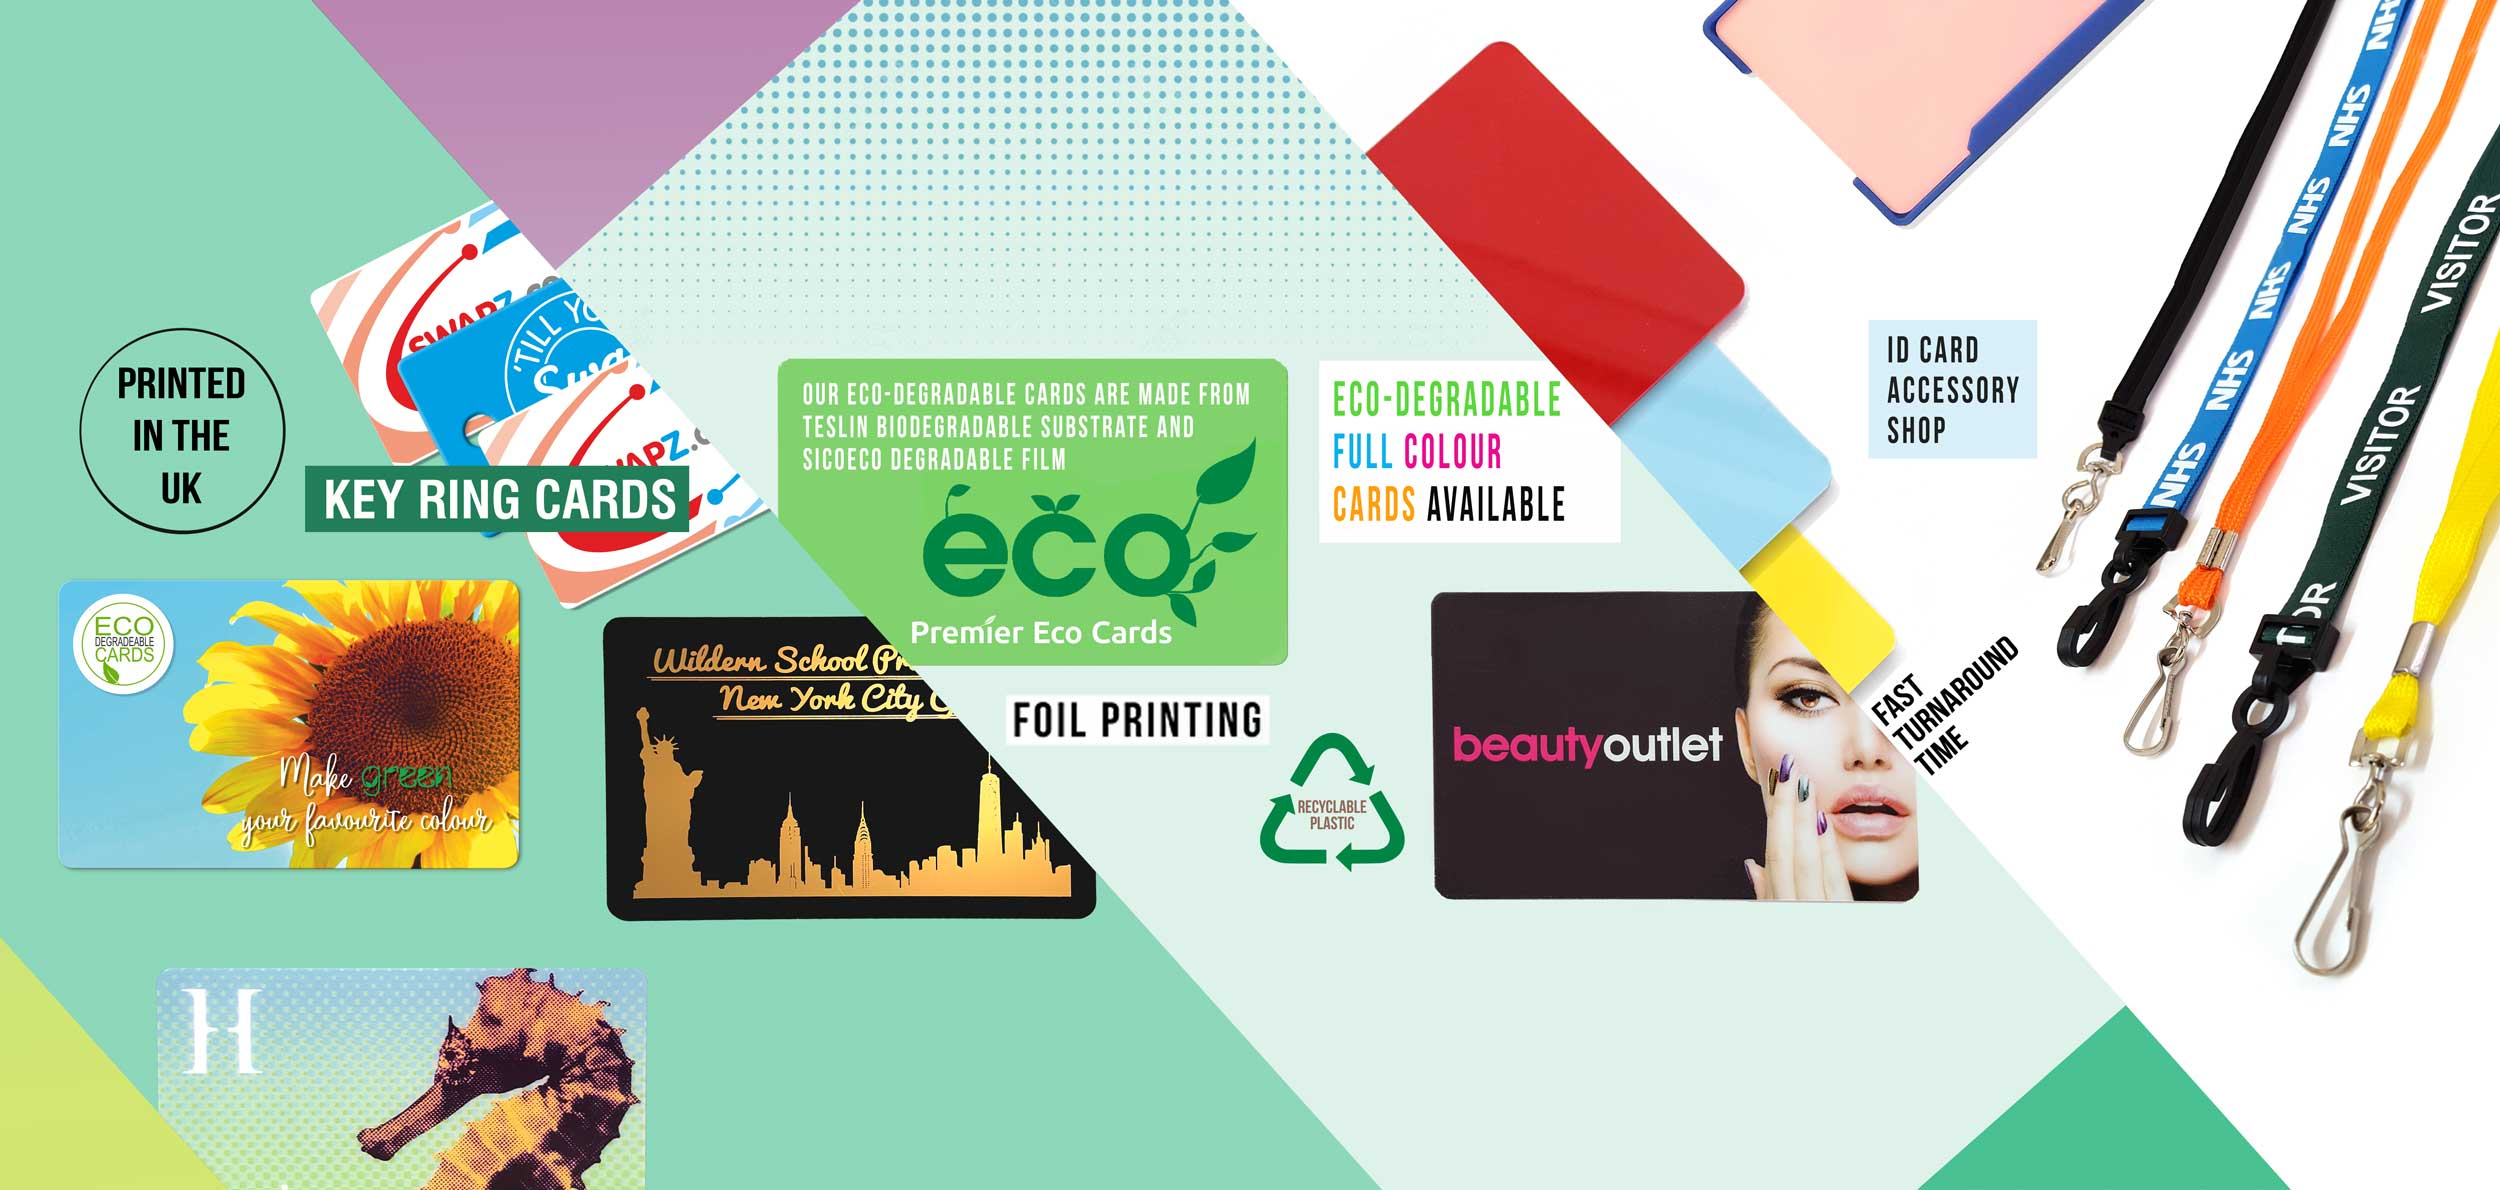 Premier Eco Cards Ltd are a plastic card printers with 20 years experience.